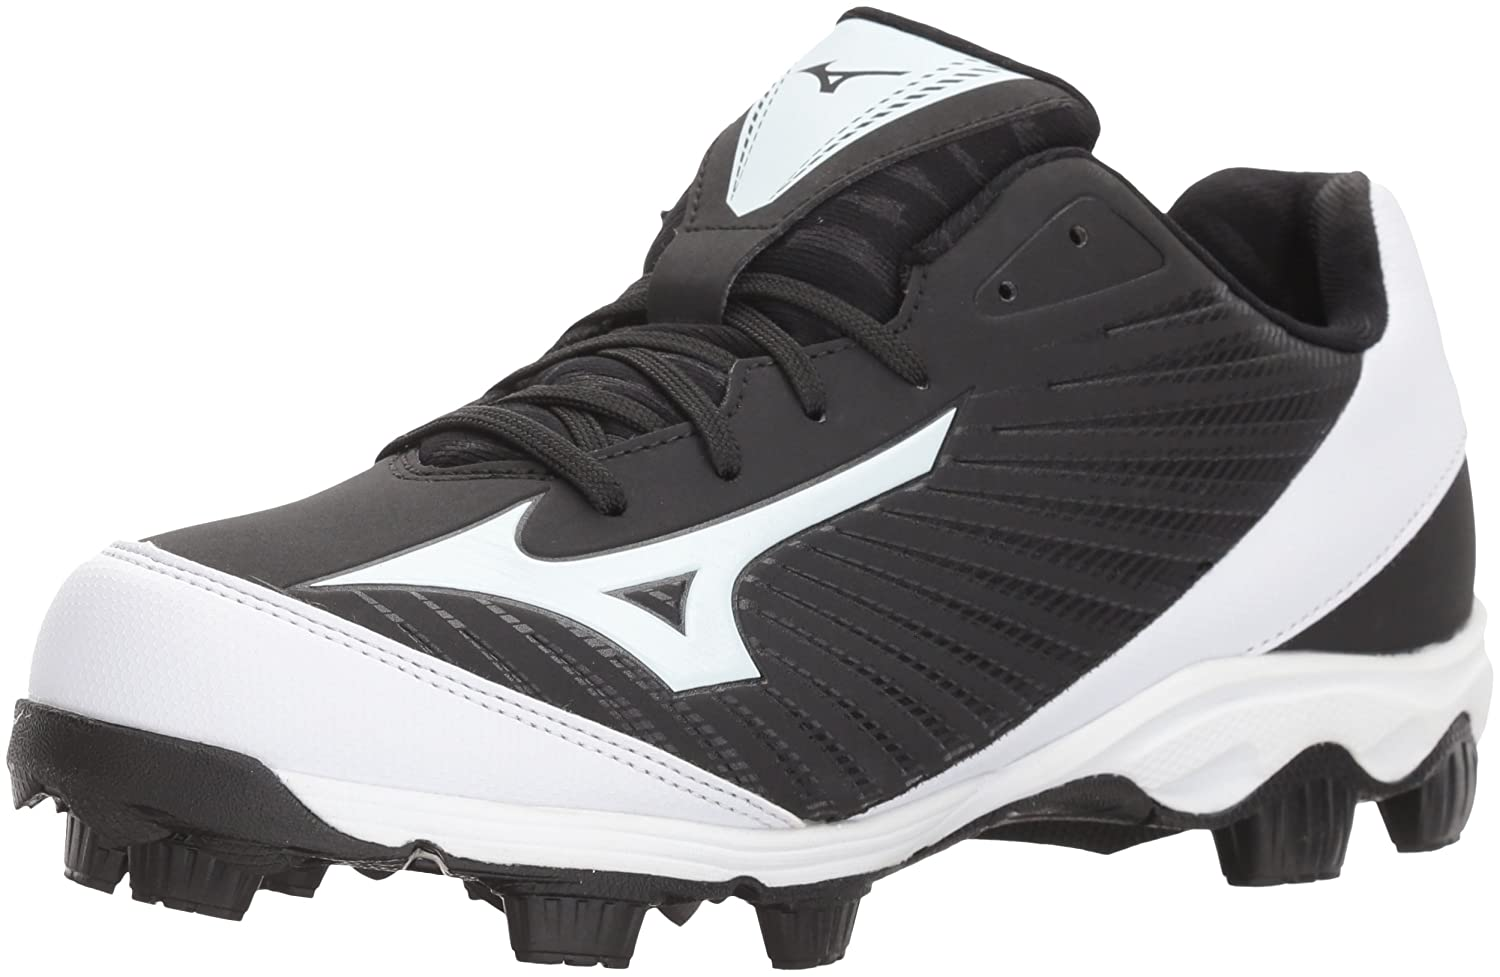 Mizuno (MIZD9) レディース 9-Spike Advanced Finch Franchise 7 Womens Fastpitch Softball Cleat B071G19JYH 9 B US|ブラック/ホワイト ブラック/ホワイト 9 B US